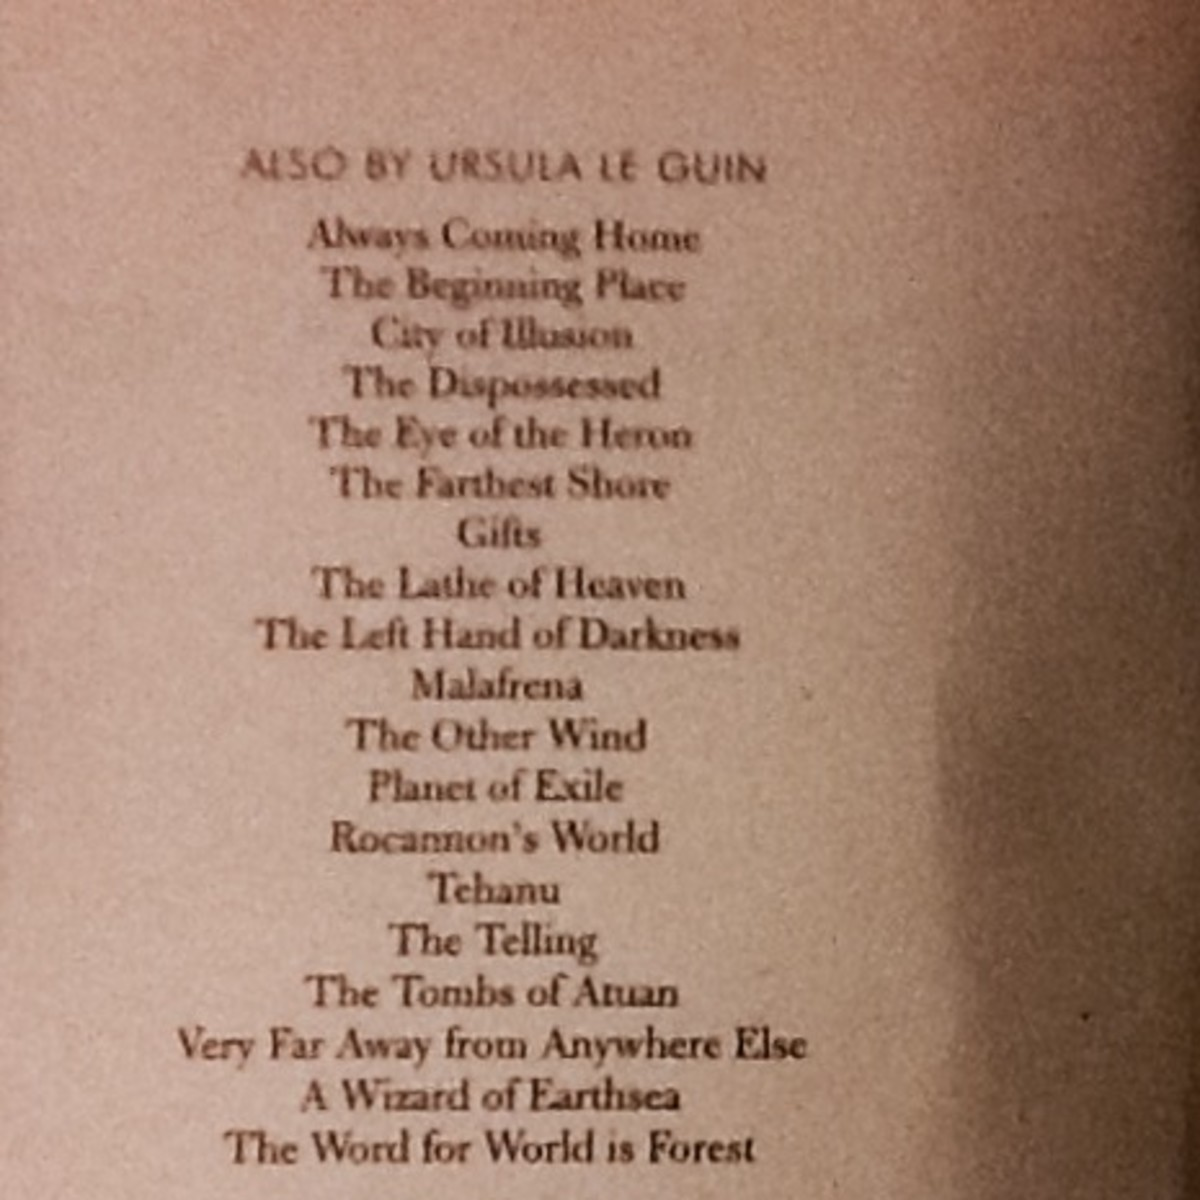 List of Titles by Ursula Le Guin